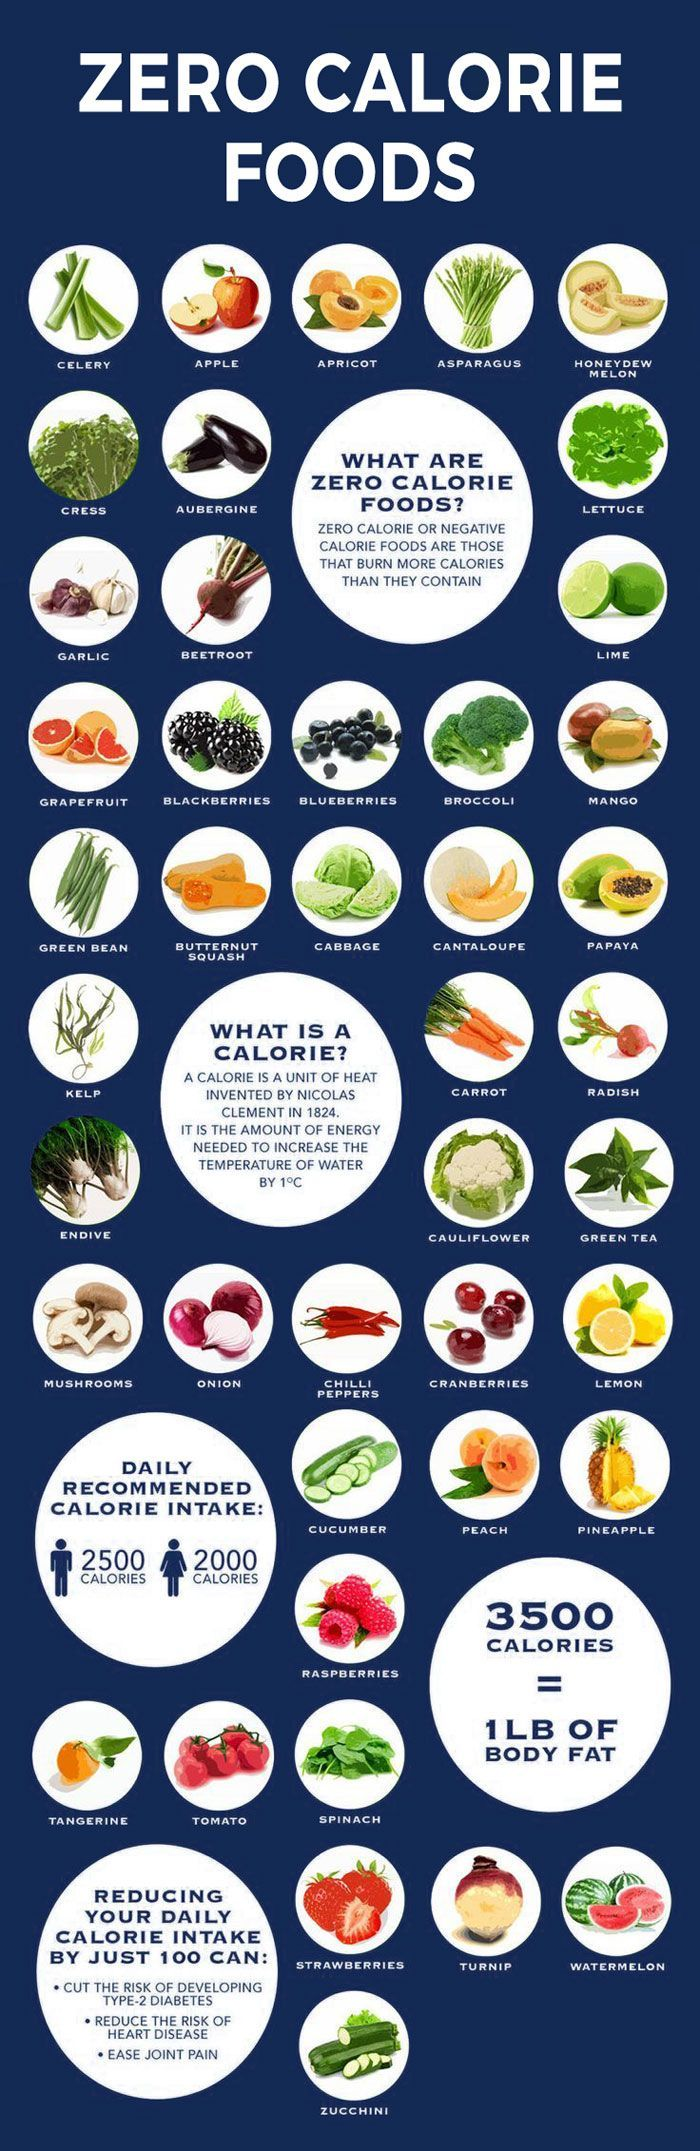 Negative calorie foods. Best foods to burn fat The fitness industry has failed 98% of the population for way too long!  Getting in shape is a lot easier than you might think..  Help us through word of mouth completely eliminate obesity, diabetes and other related diseases through proper fitness education!  You don't have to run 1 hour or even 20 minutes a day..  Just 7 minutes a day 3 times per week and you will be amazed and very pleased by the results!  That is our guarantee or your money…